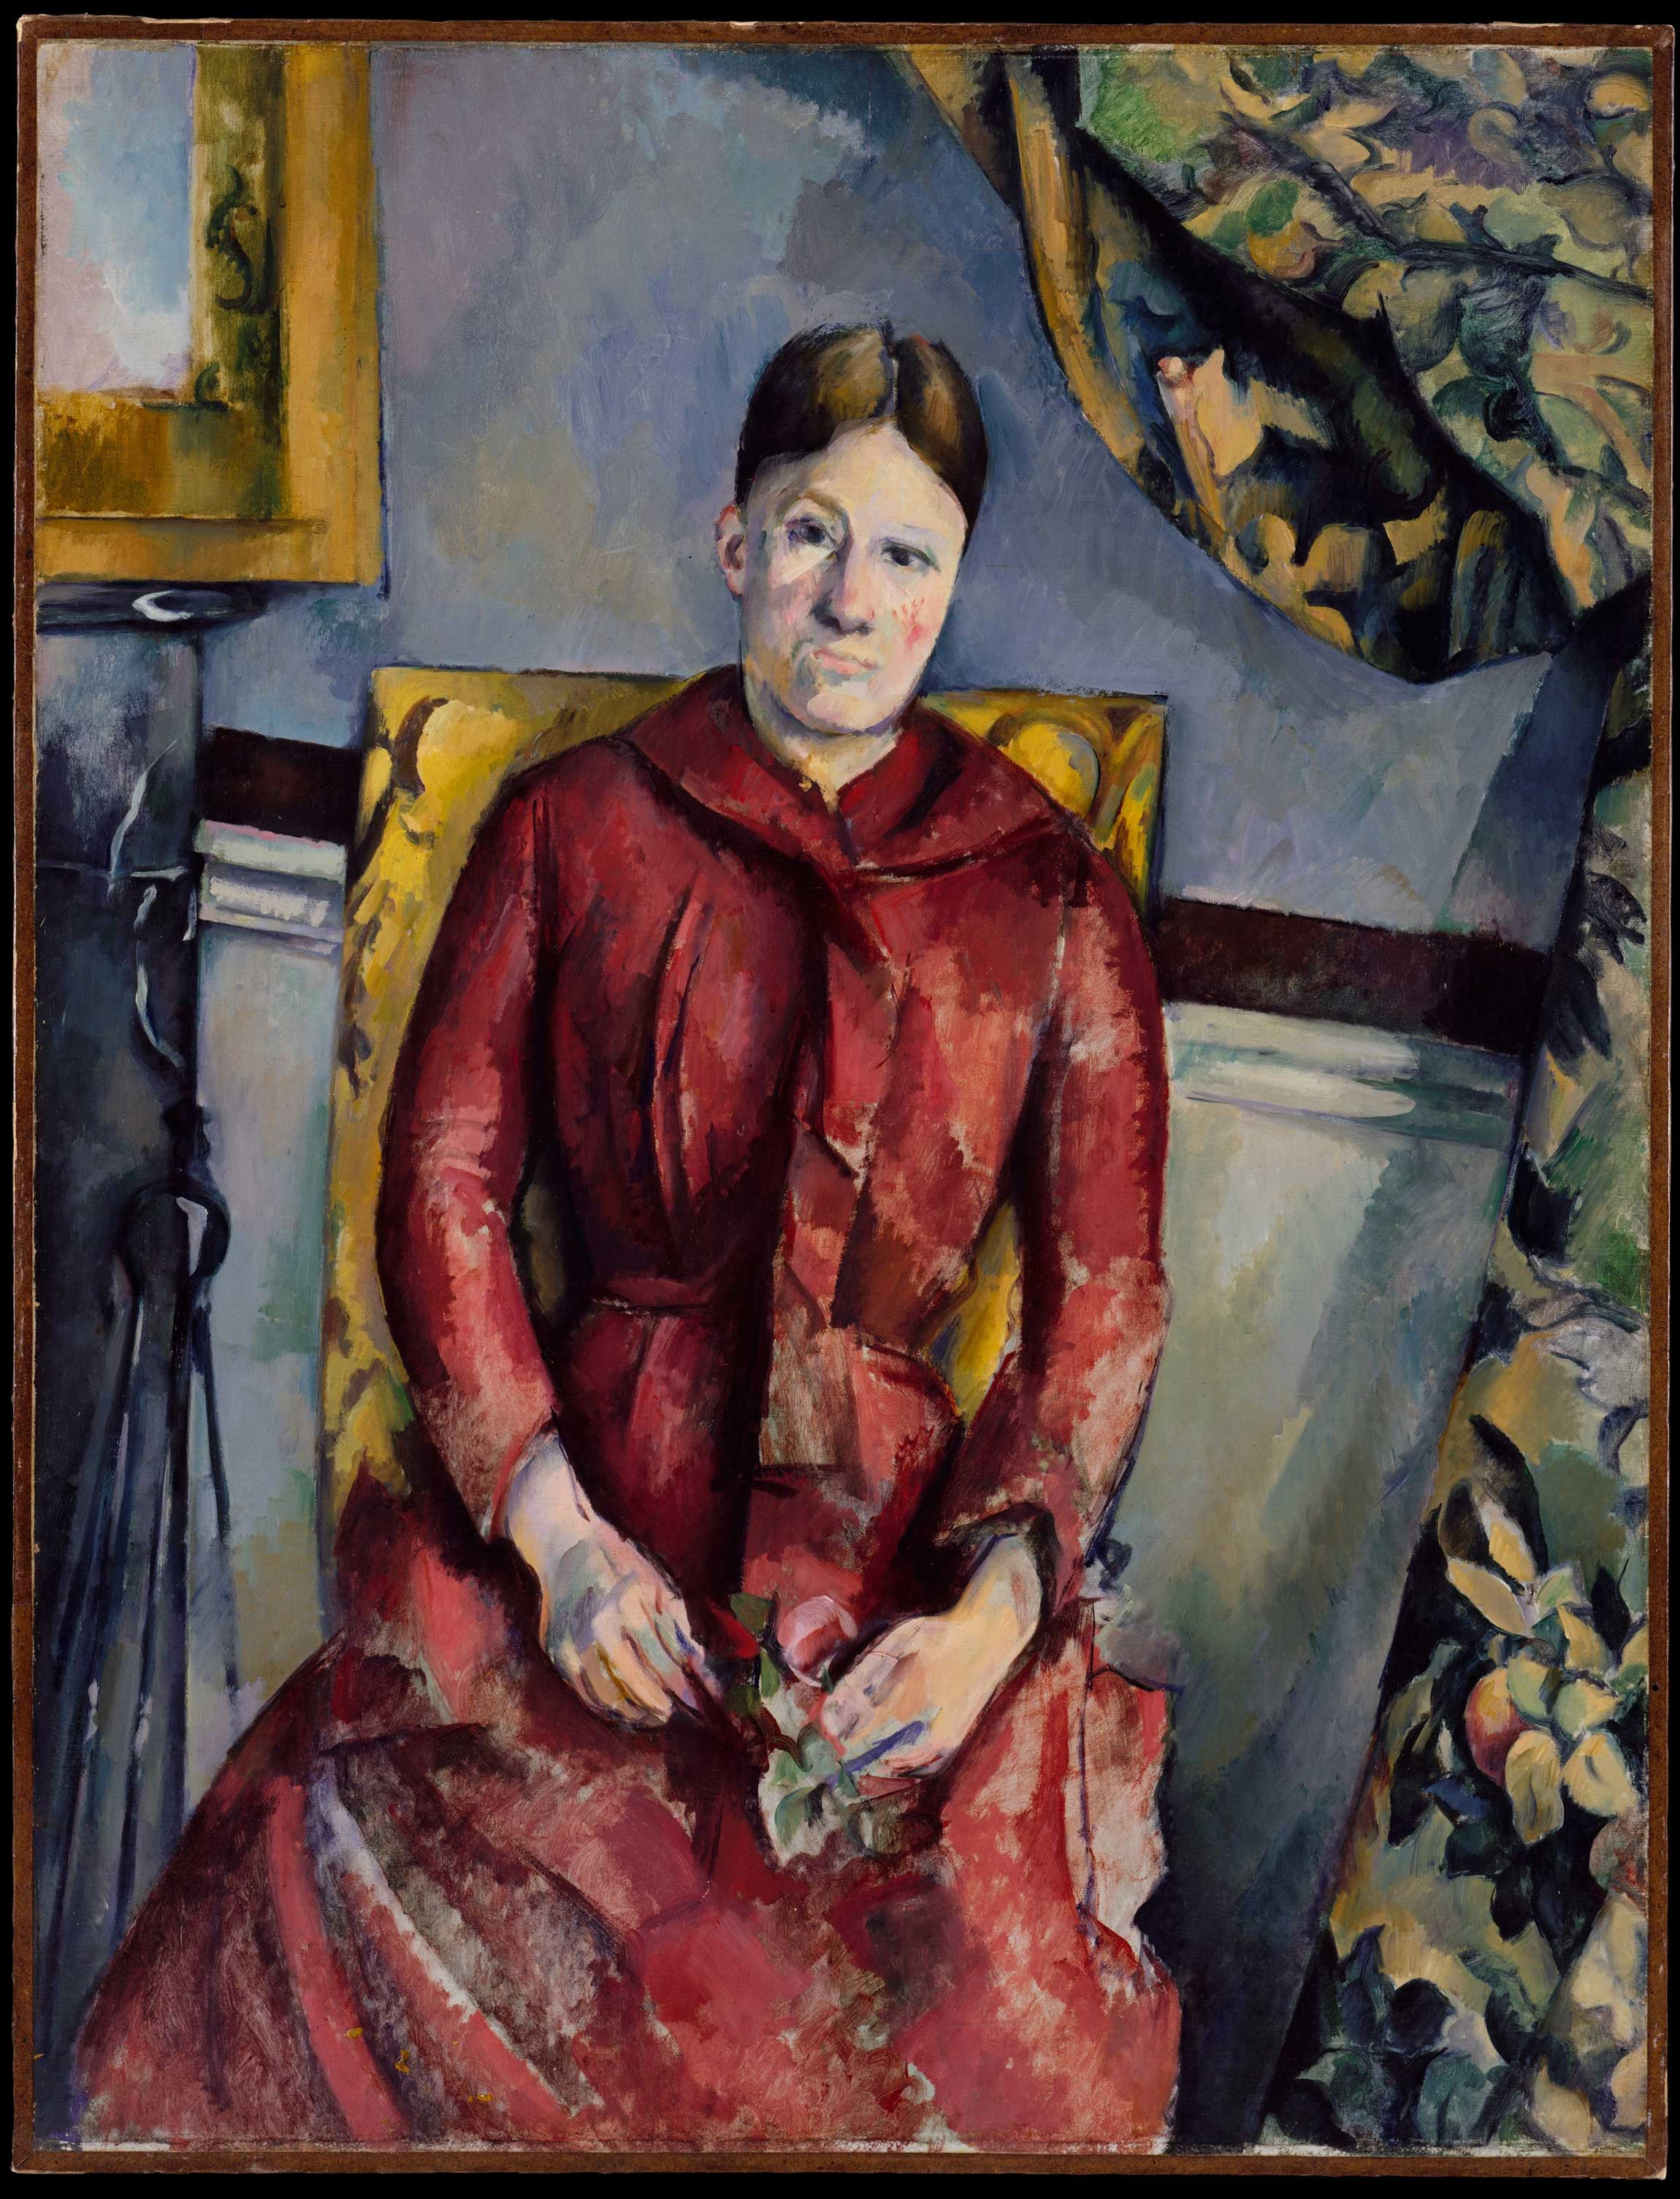 Paul_Cezanne_1888-90_Madame_Cezanne_(Hortense_Fiquet_1850–1922)_in_a_Red_Dress_oil_on_canvas_116.5_x_89.5_cm_The_Metropolitan_Museum_of_Art_New_York